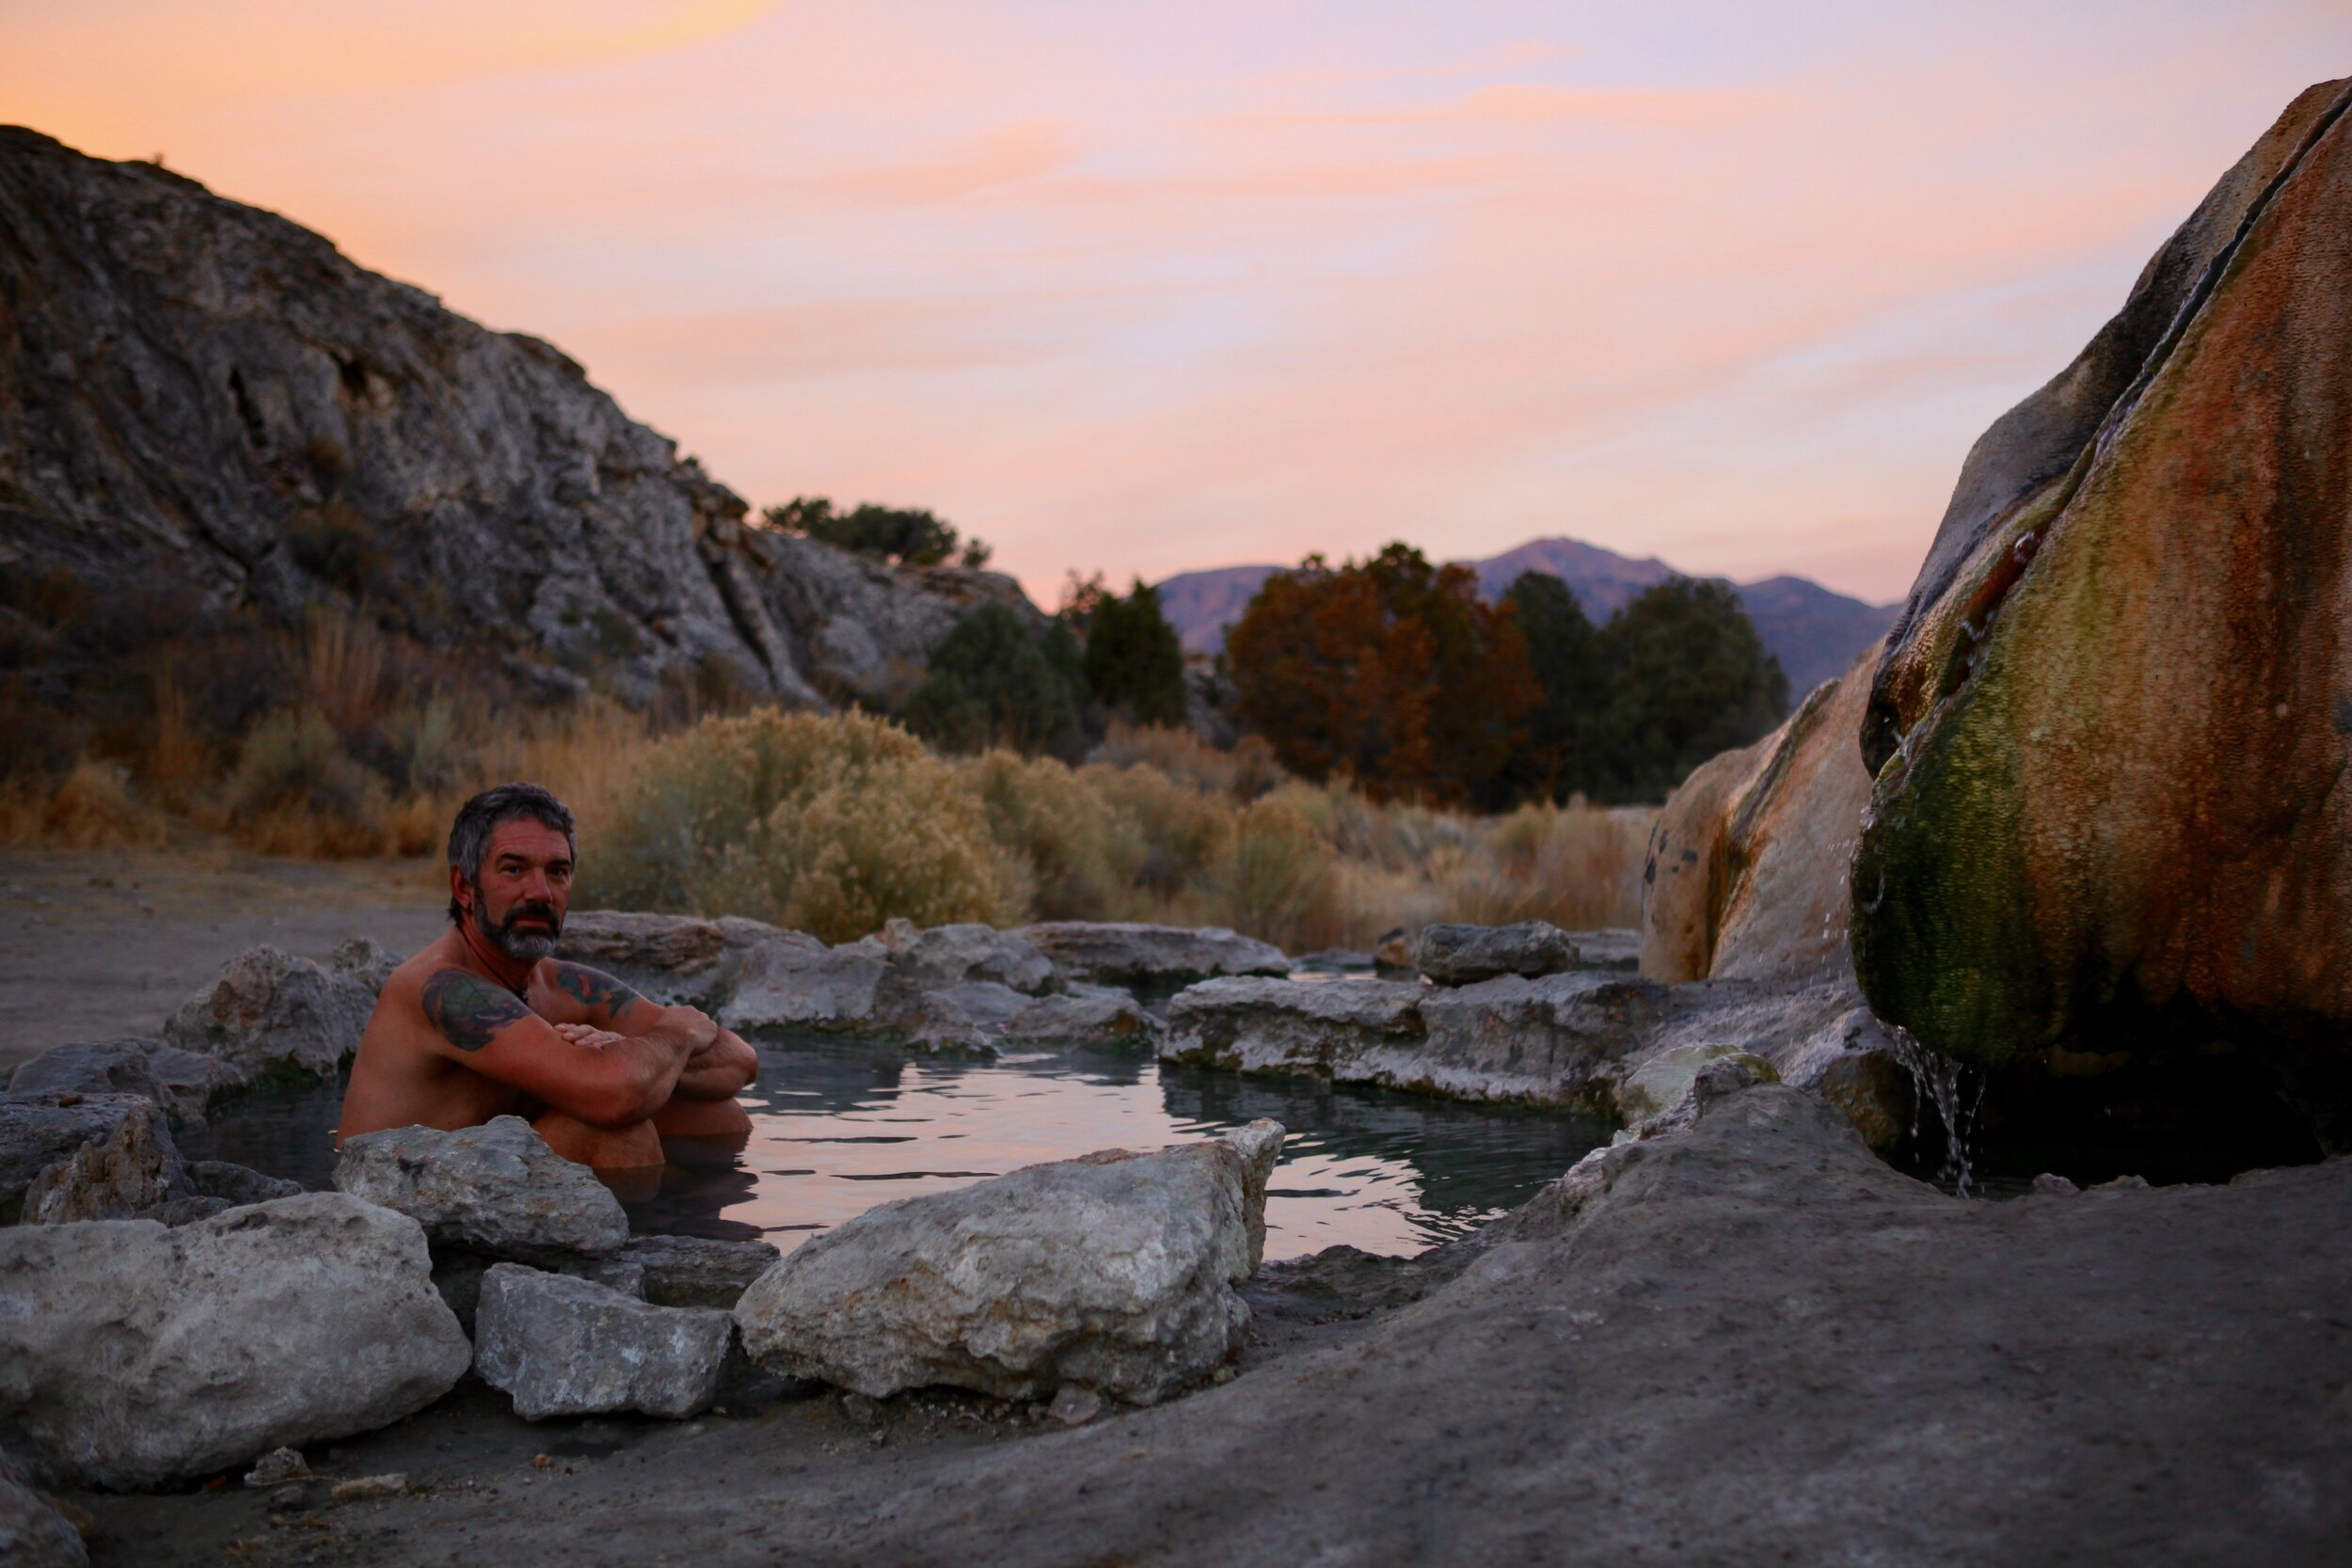 Sunrise at Travertine Hot Springs with my Beloved